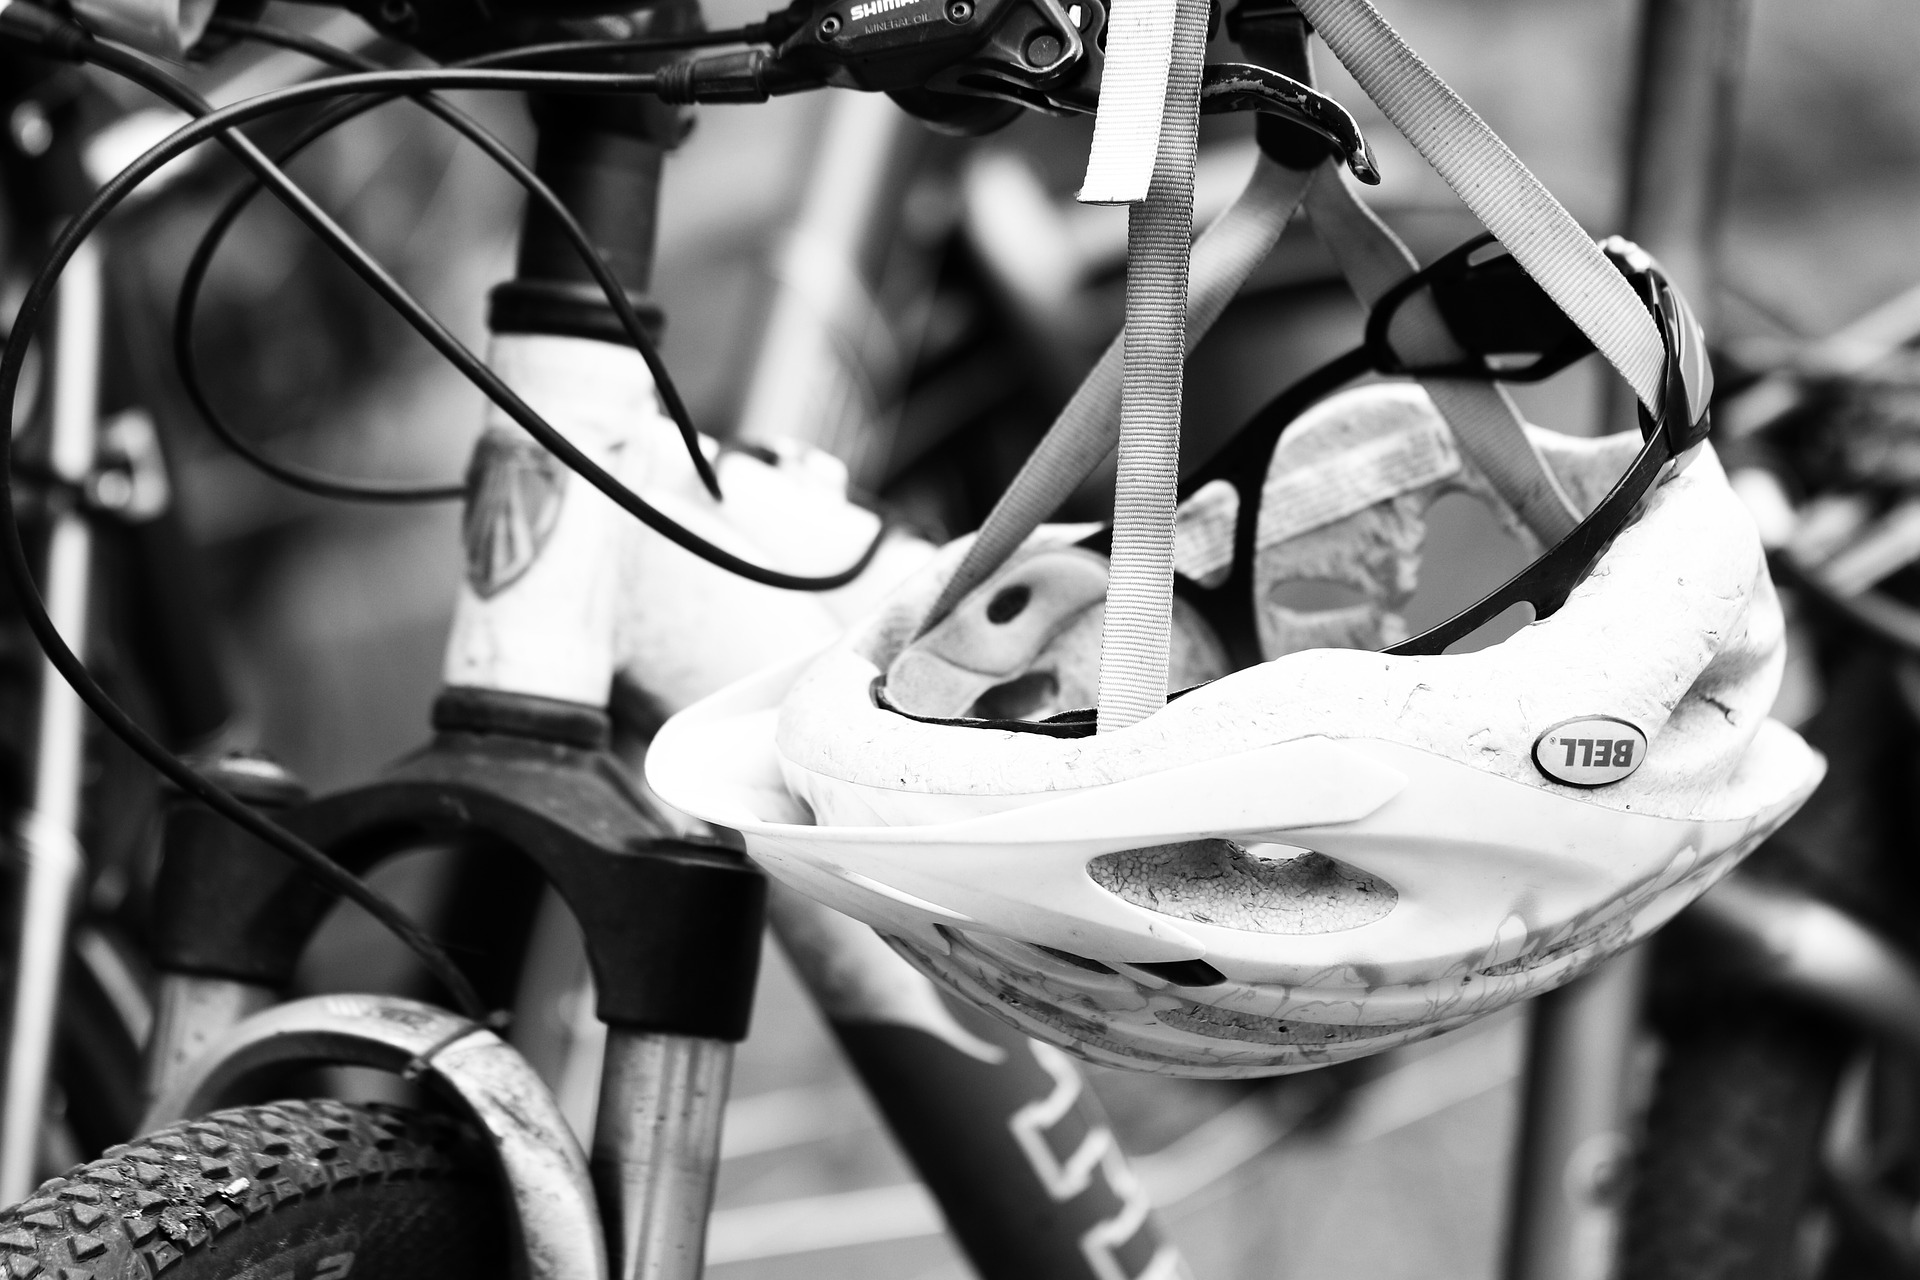 Should you wear a bike helmet to prevent ladder injuries?